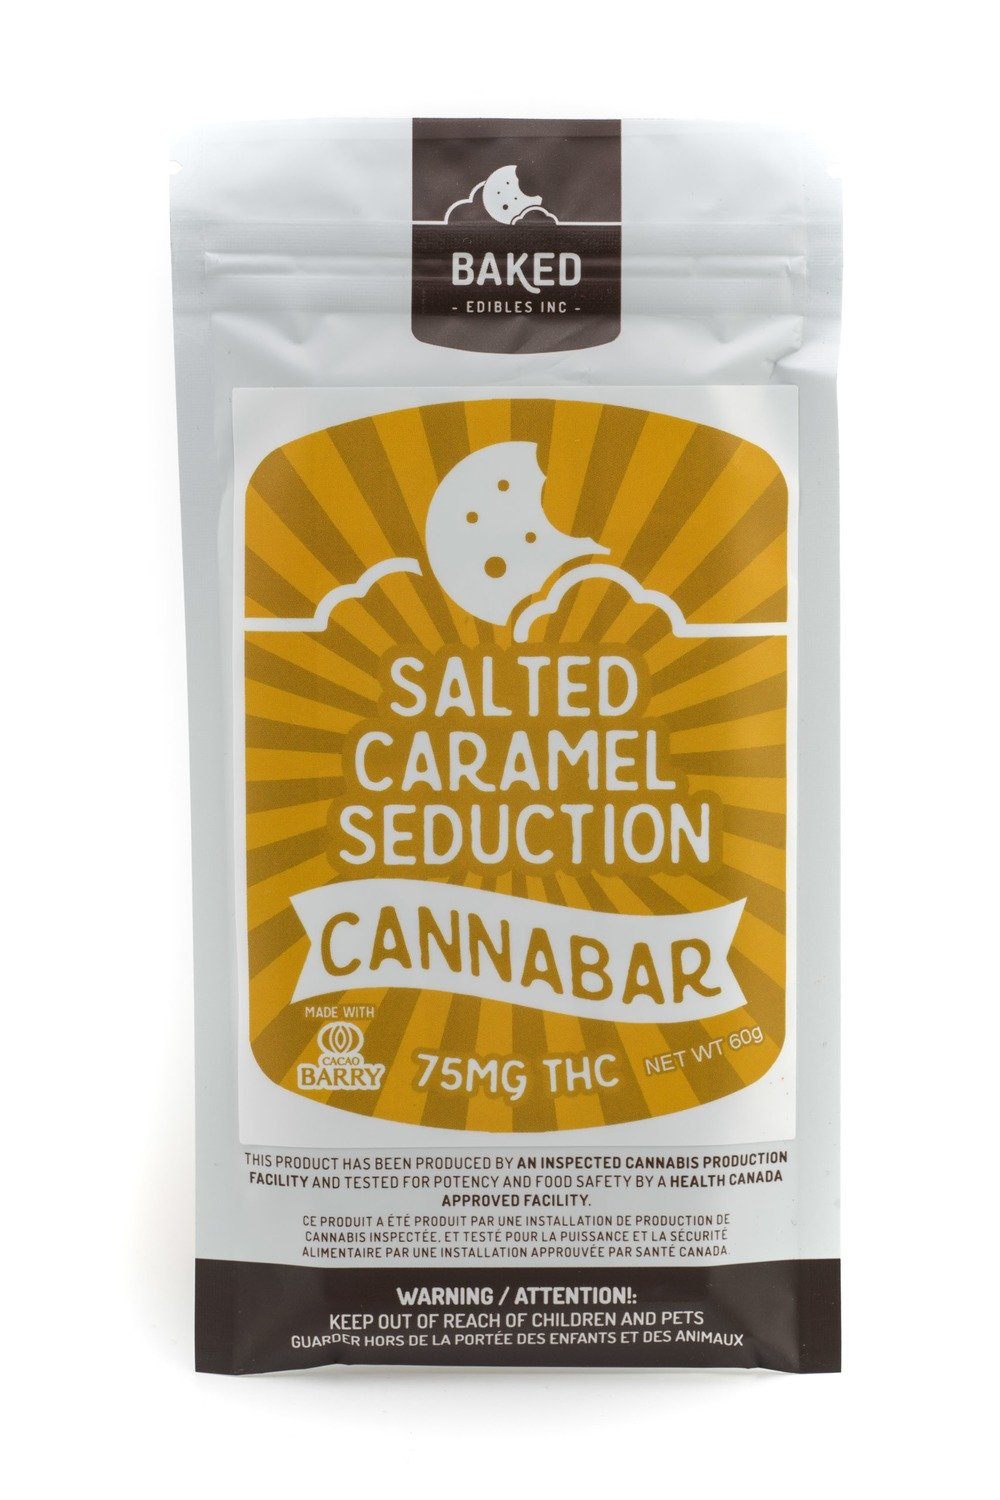 Salted Caramel Cannabar (75mg THC) by Baked Edibles